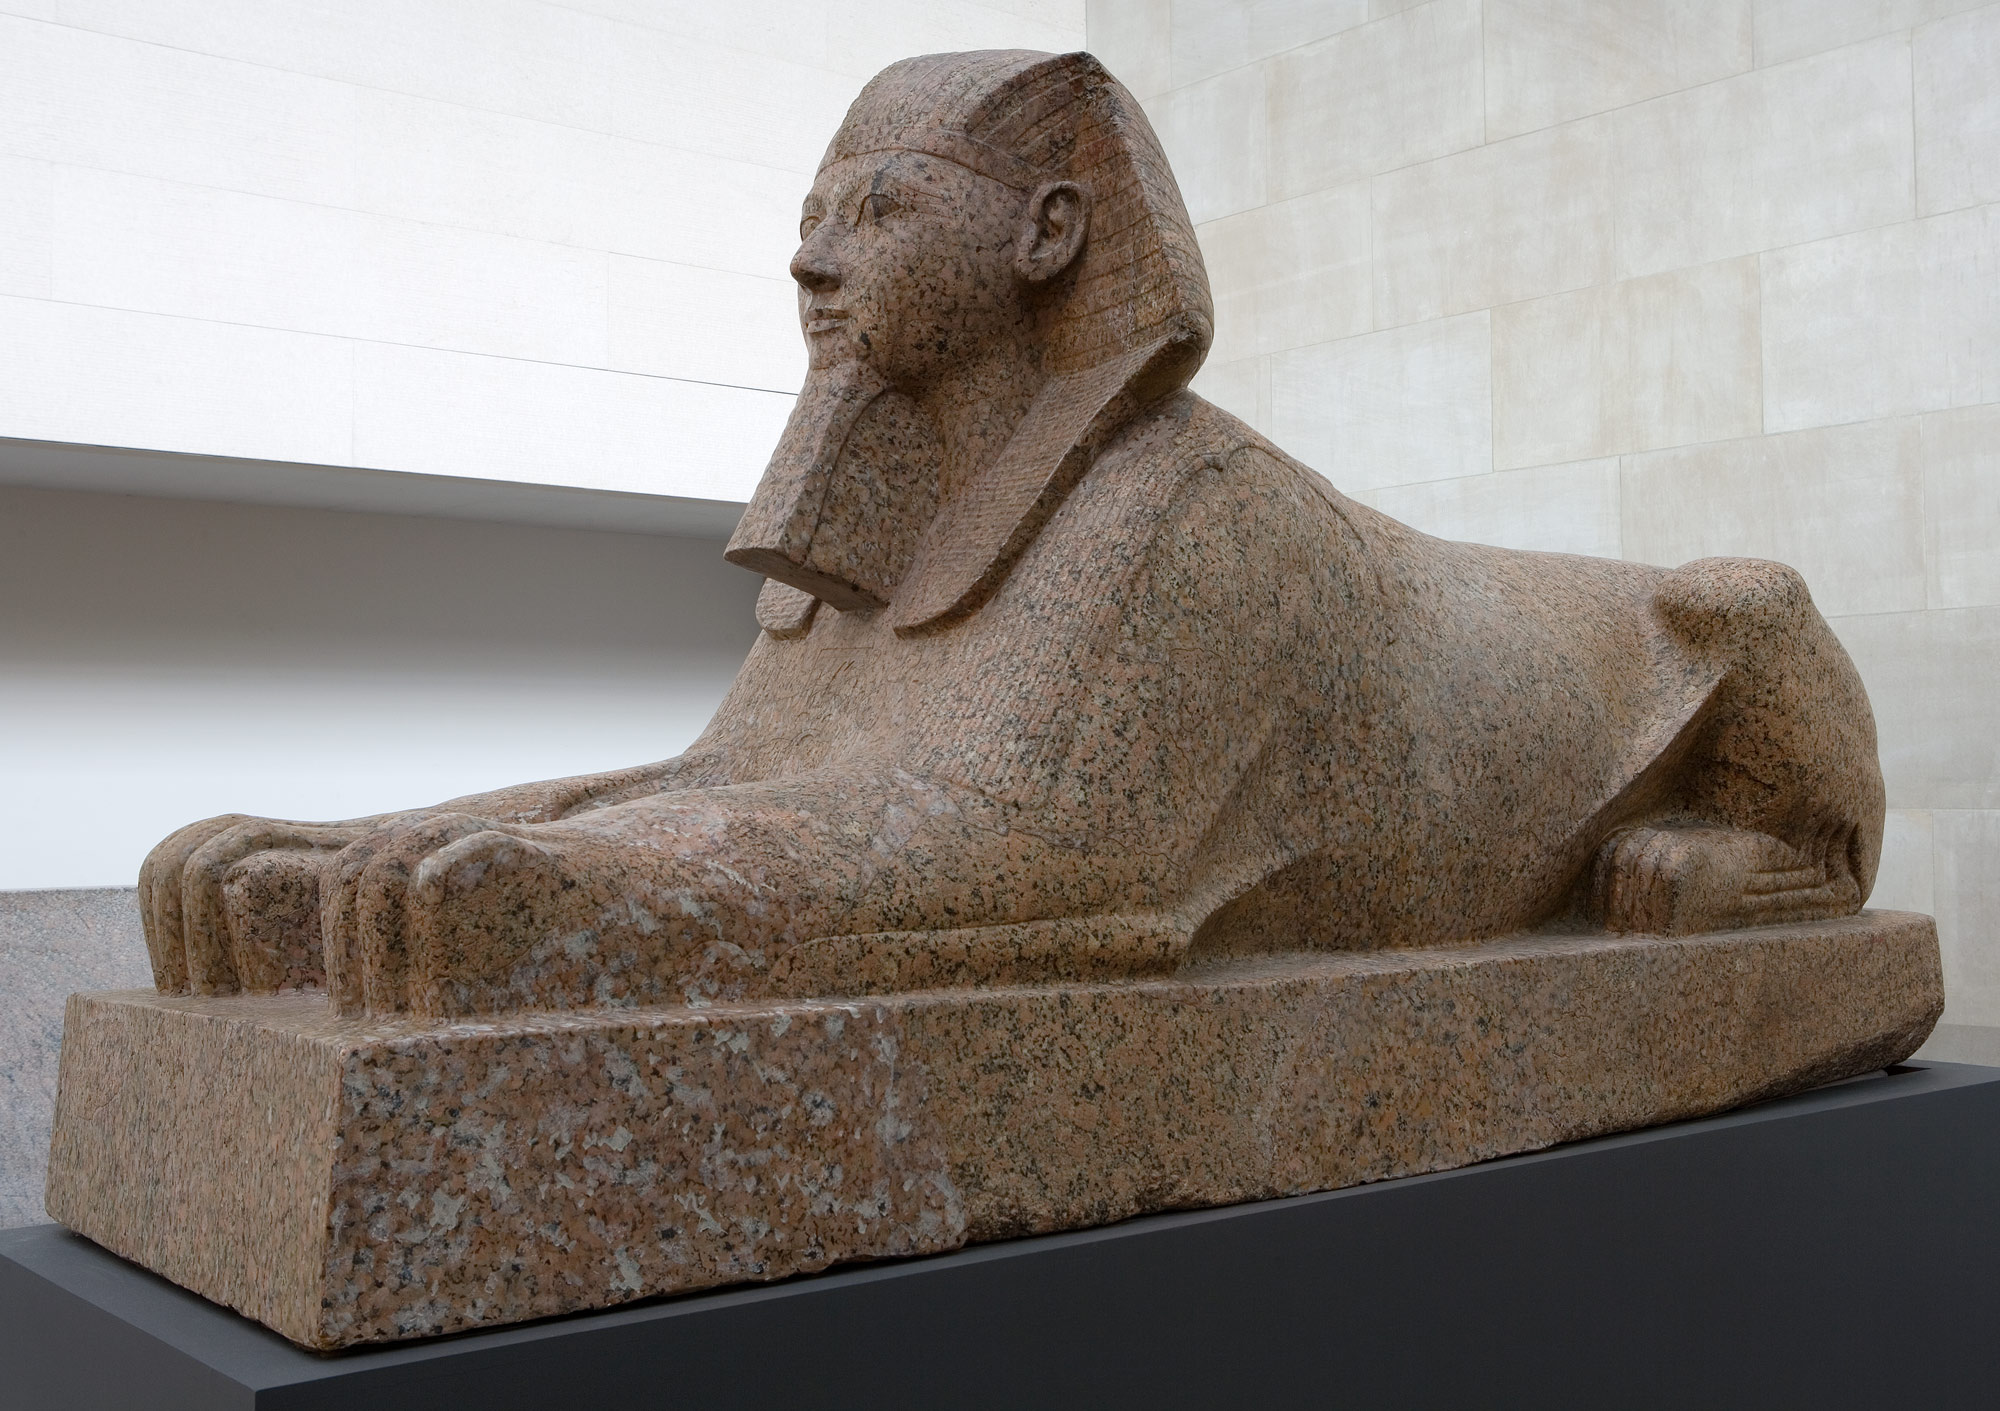 hatshepsut essay example Hatshepsut then began her early career as queen and regent of egypt  an example of this would be  just send your request for getting no plagiarism essay.